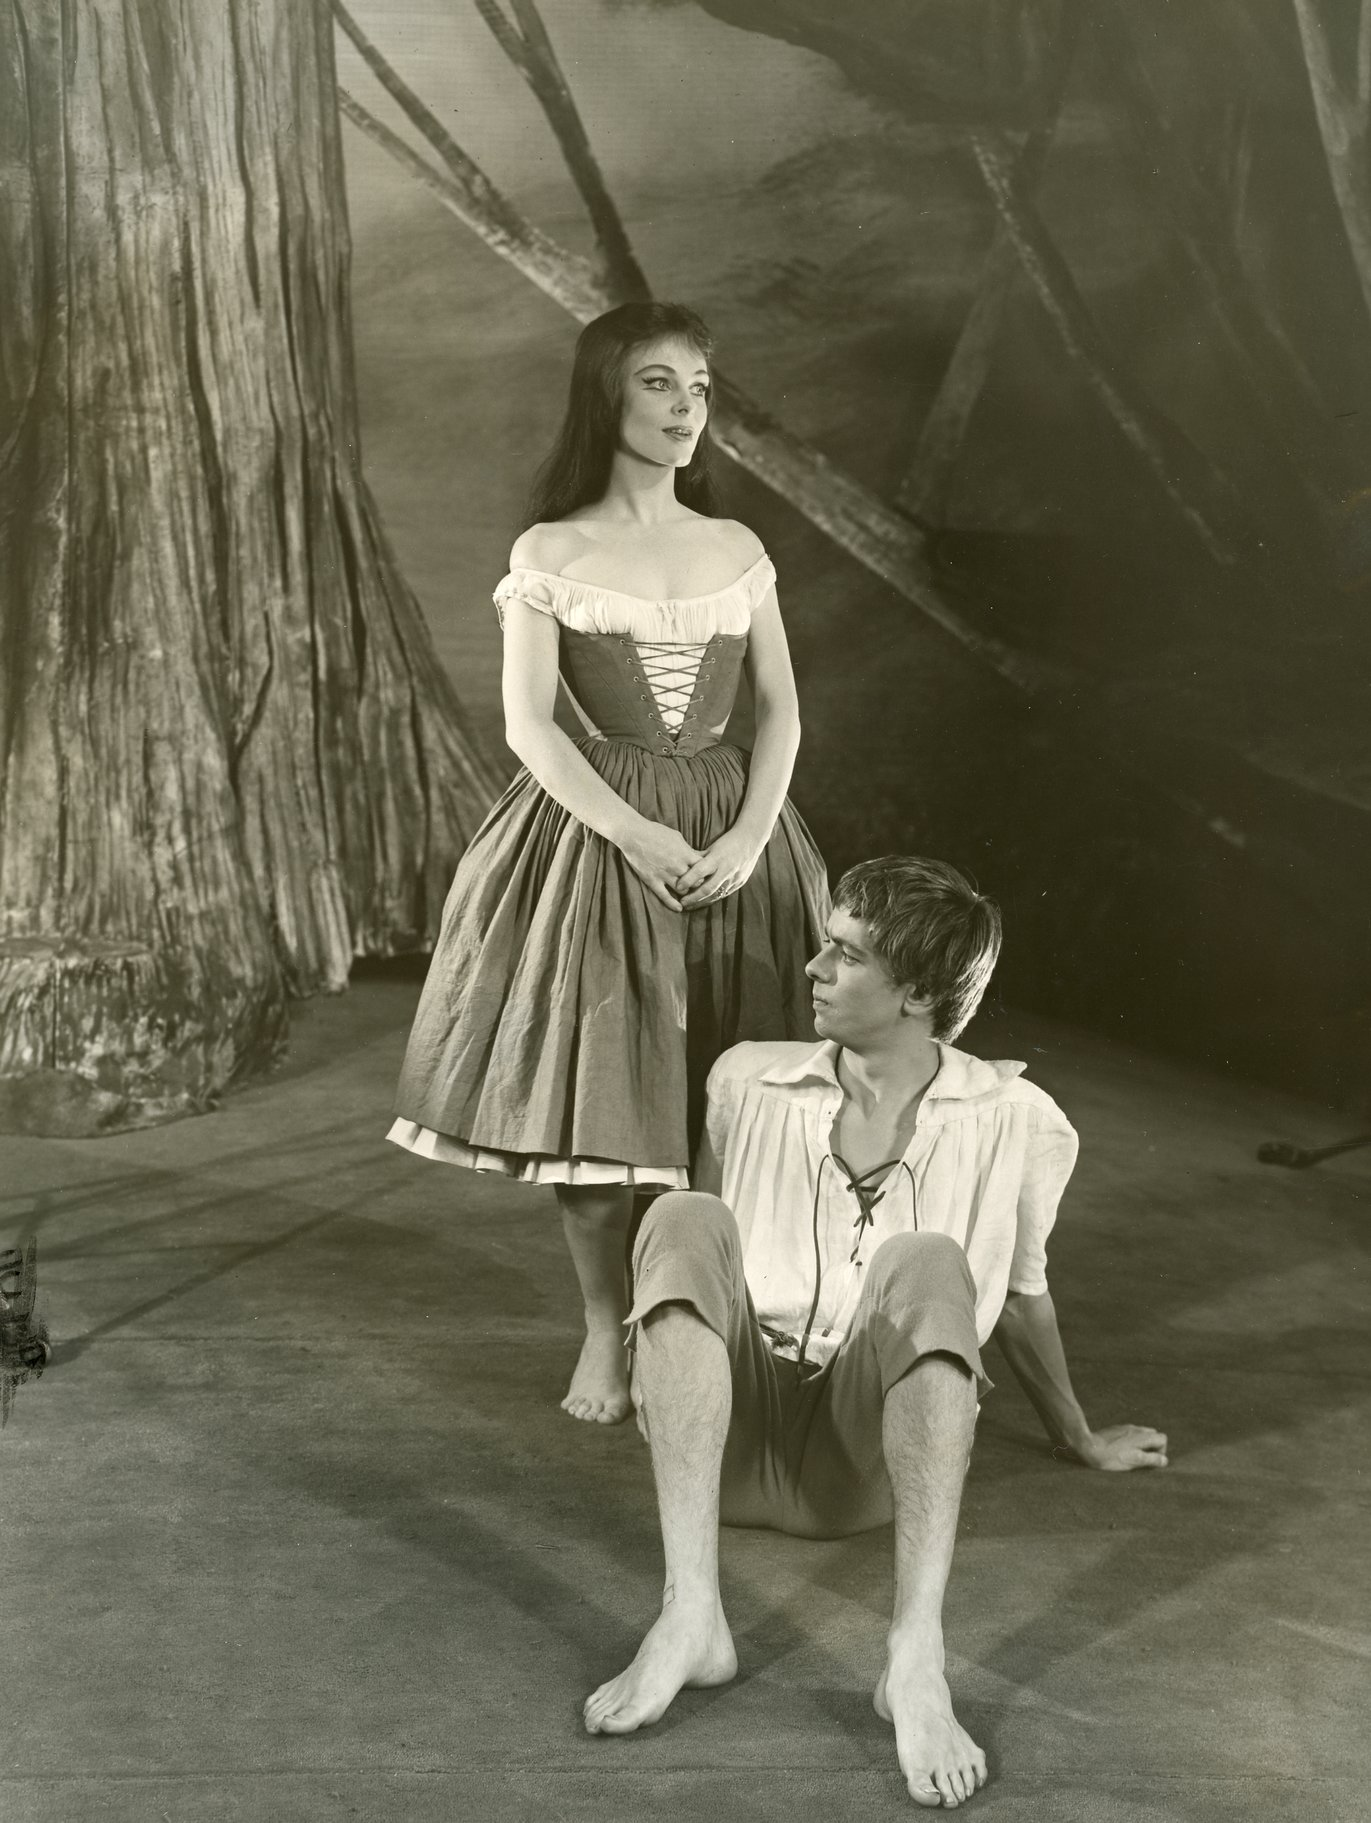 A woman stands over a man in the forest.